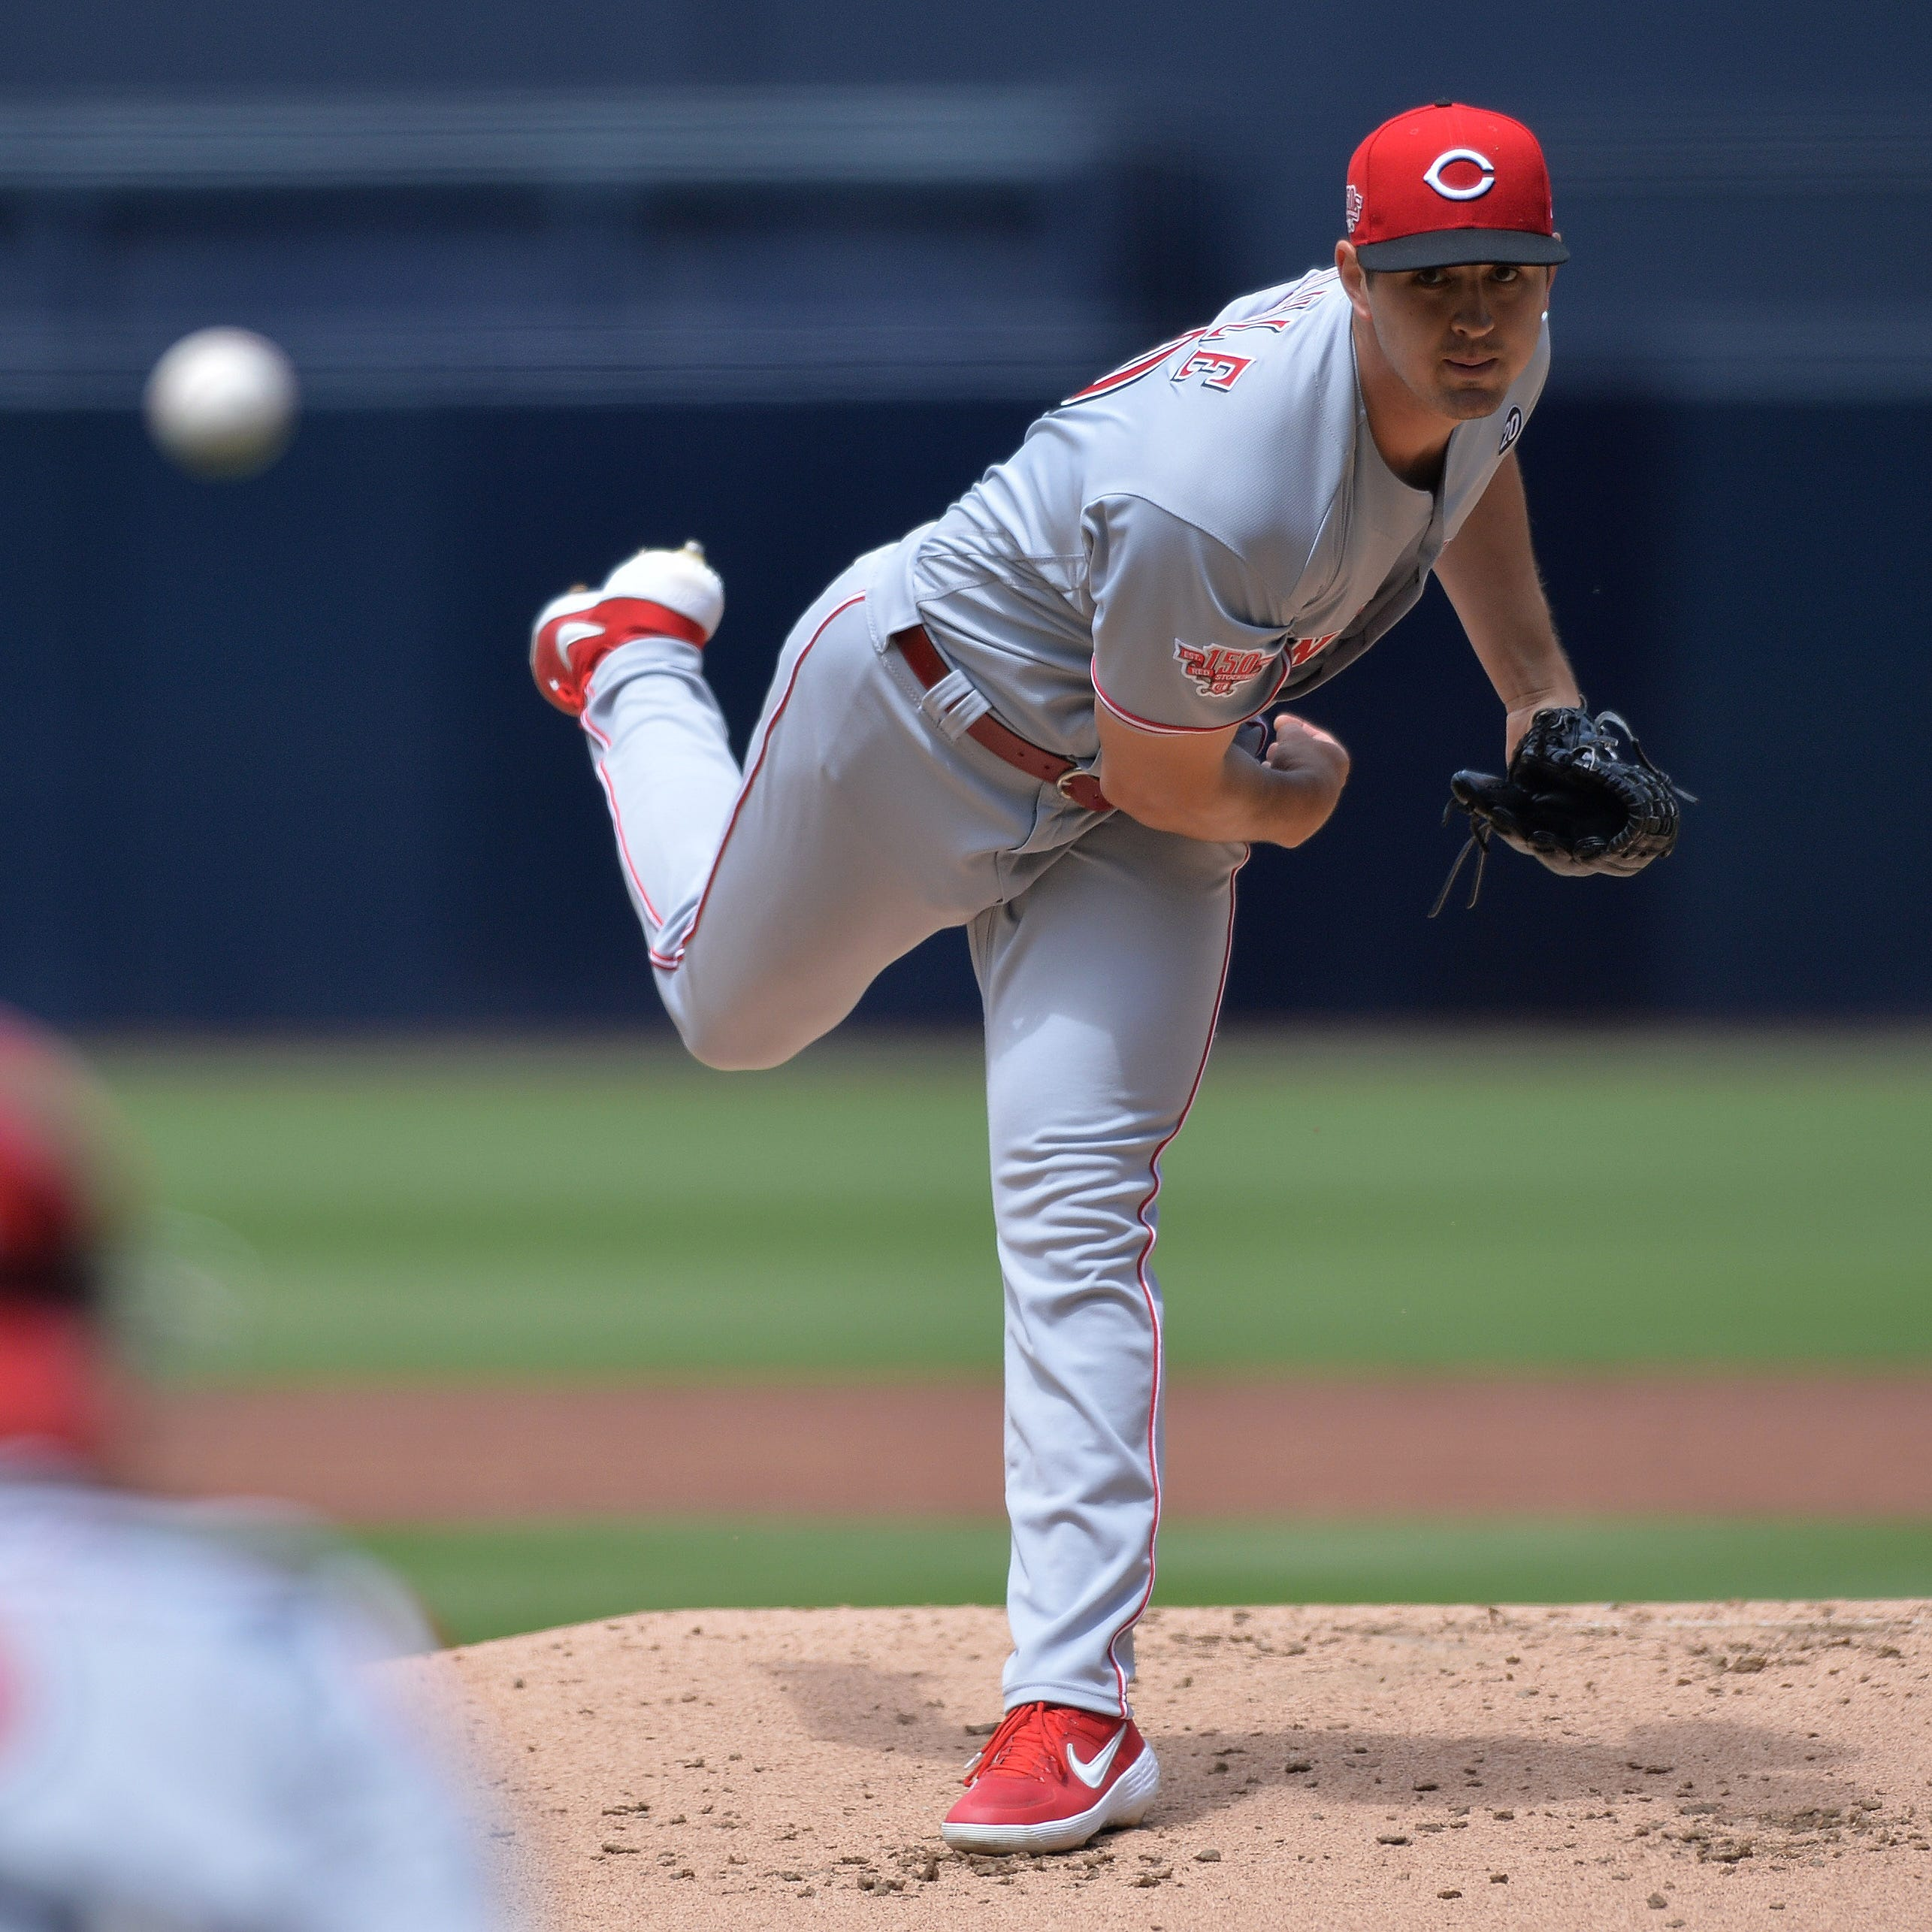 Cincinnati Reds end long road trip with another 1-run loss, searching for more offense